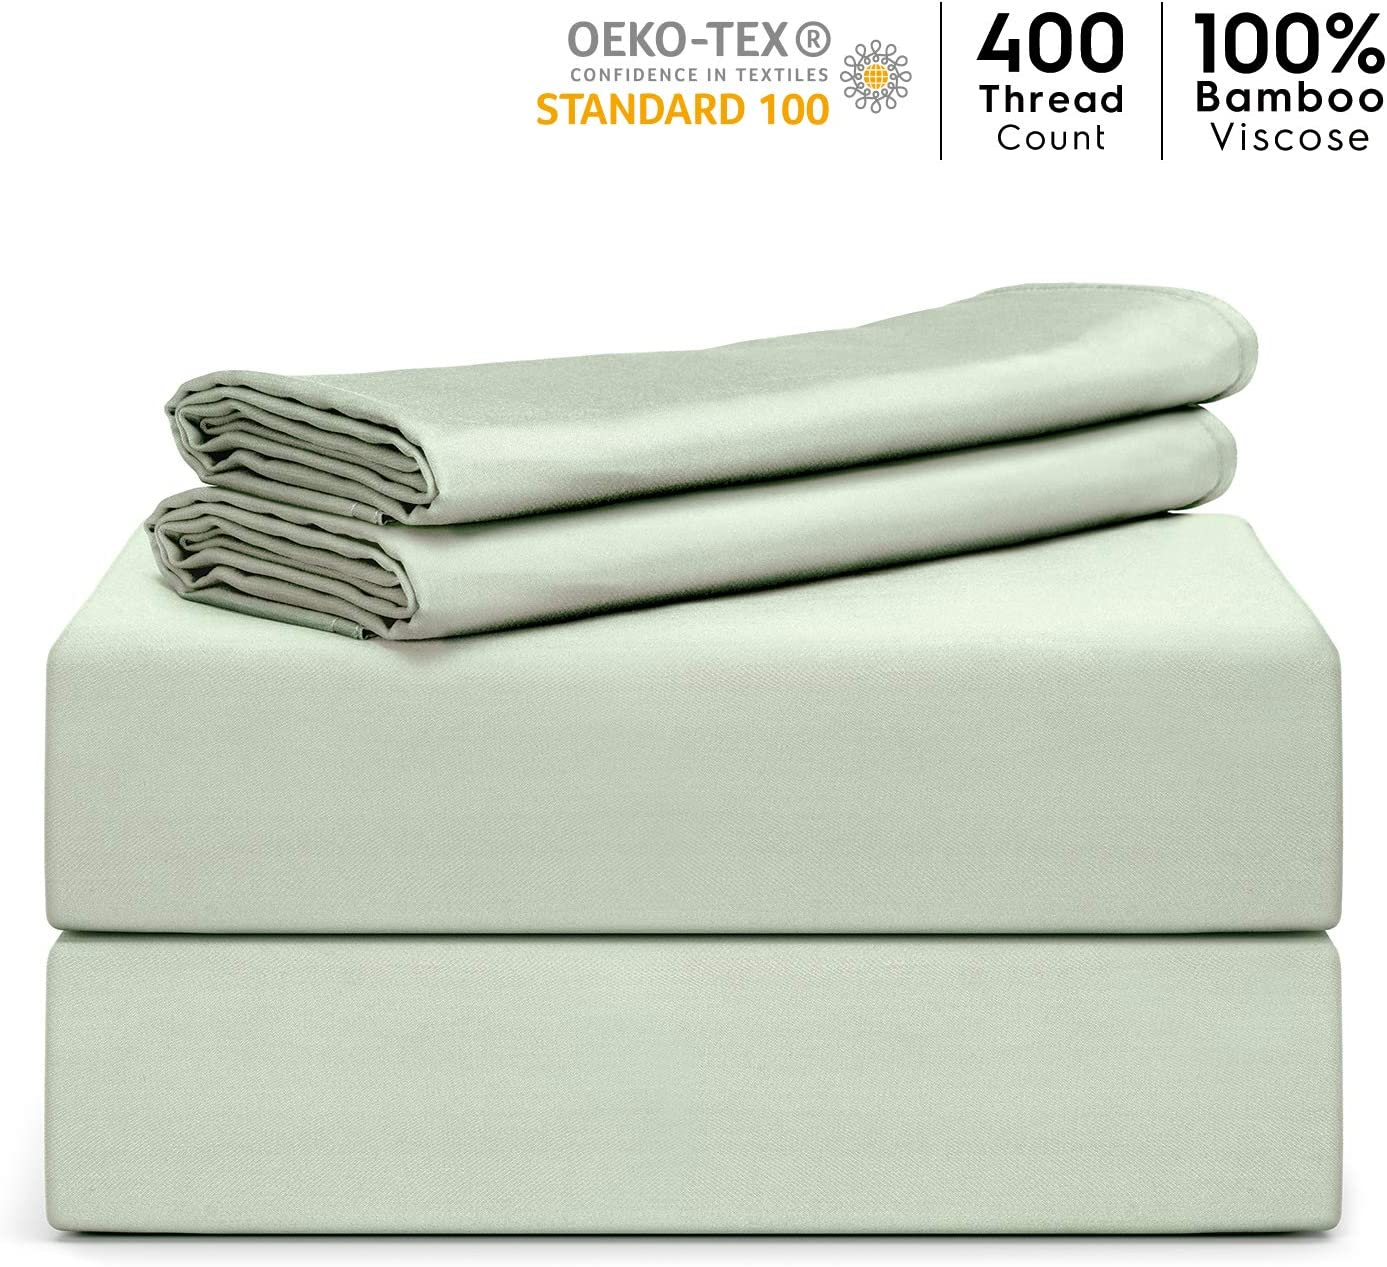 """Tafts Bamboo Sheets King Size - 100% Pure Organic Viscose Bamboo Sheet Set - 400TC Bamboo Bed Sheets - 4 Pieces - 17"""" Deep Pocket - Silk Feel, Cooling, Anti-Static, Hypoallergenic (Sage Green)"""